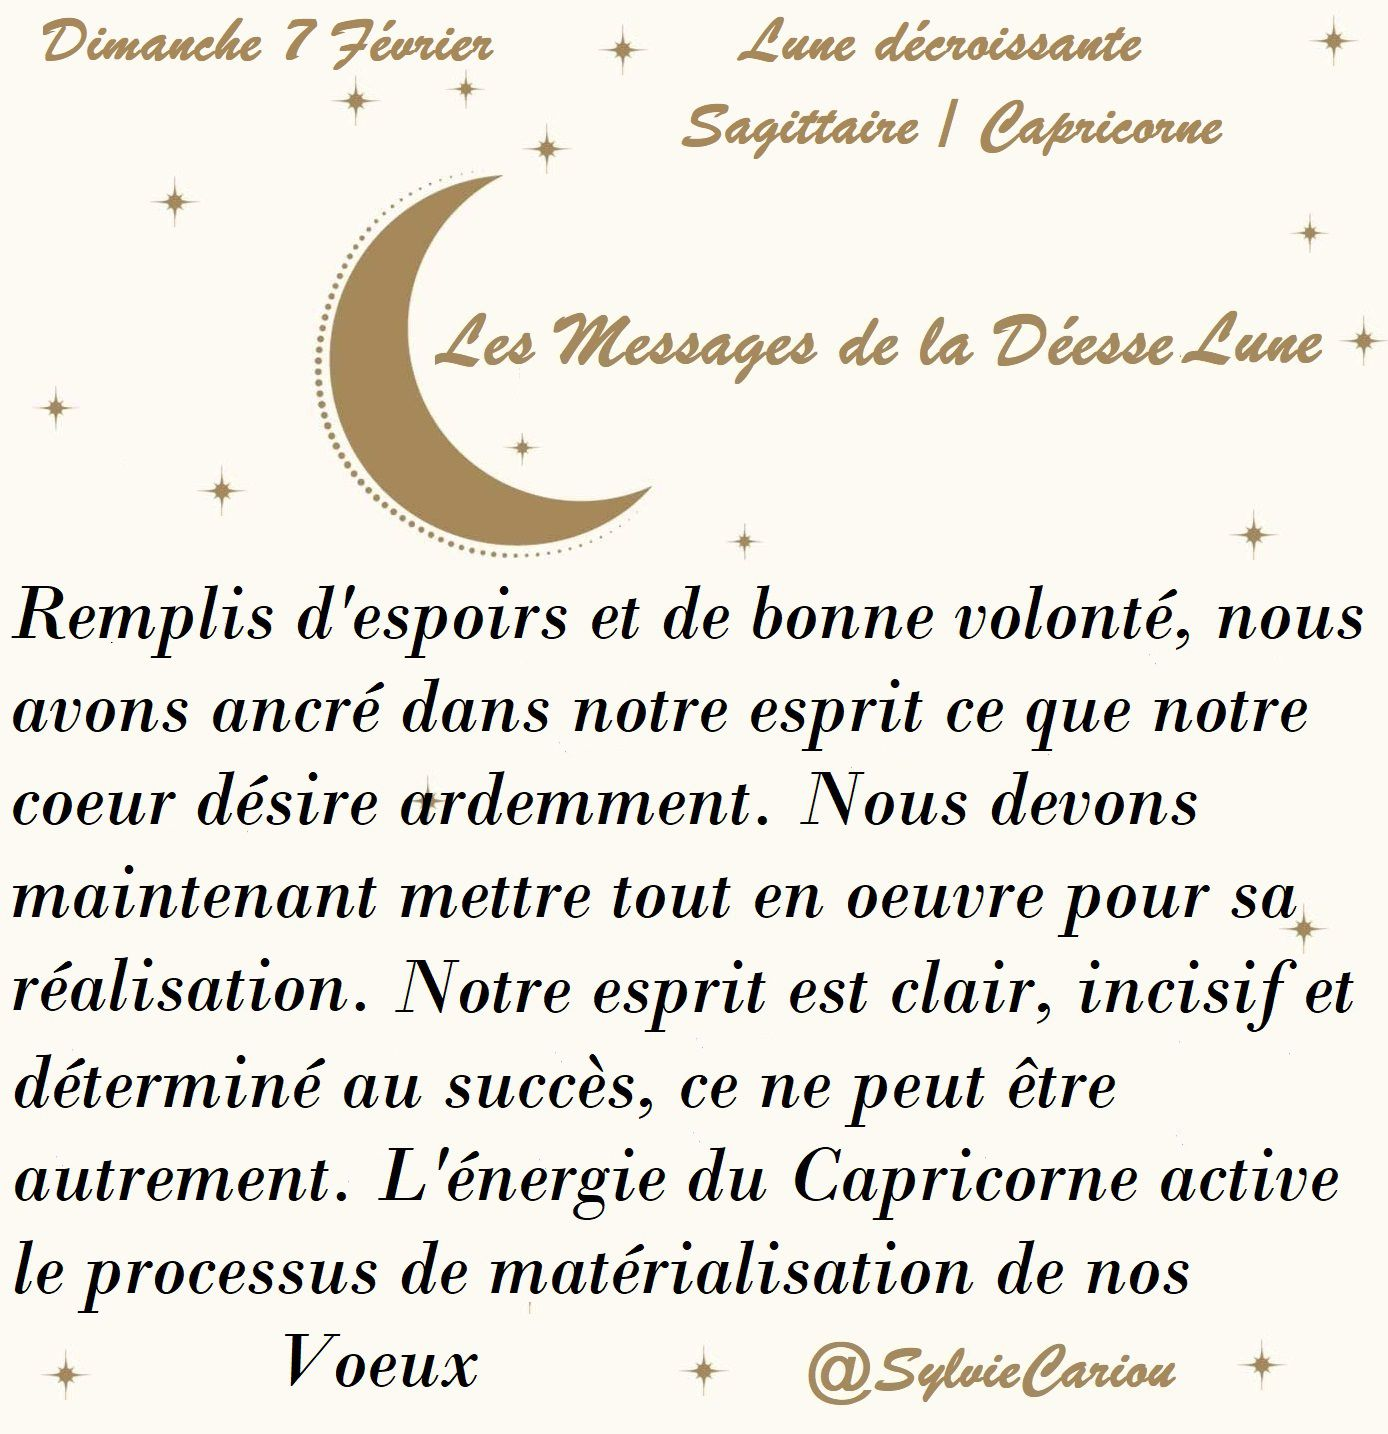 MESSAGES CELESTES 7 FEVRIER 2021